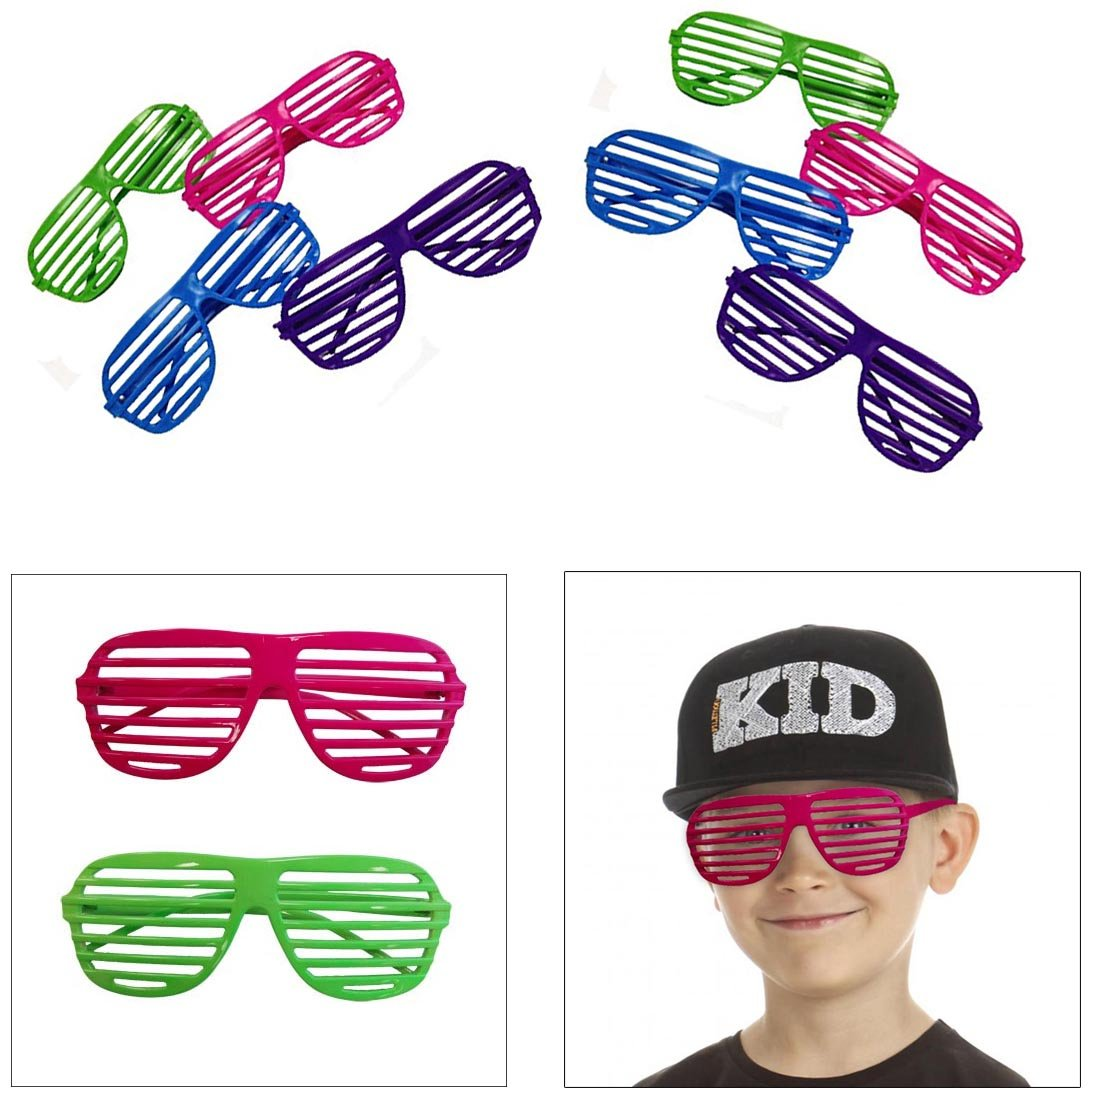 3c391eb6ec0 Amazon.com  dazzling toys 36 Pack 80 s Slotted Toy Sunglasses Party Favors  Costume - Pack of 36 - Assorted Colors  Toys   Games